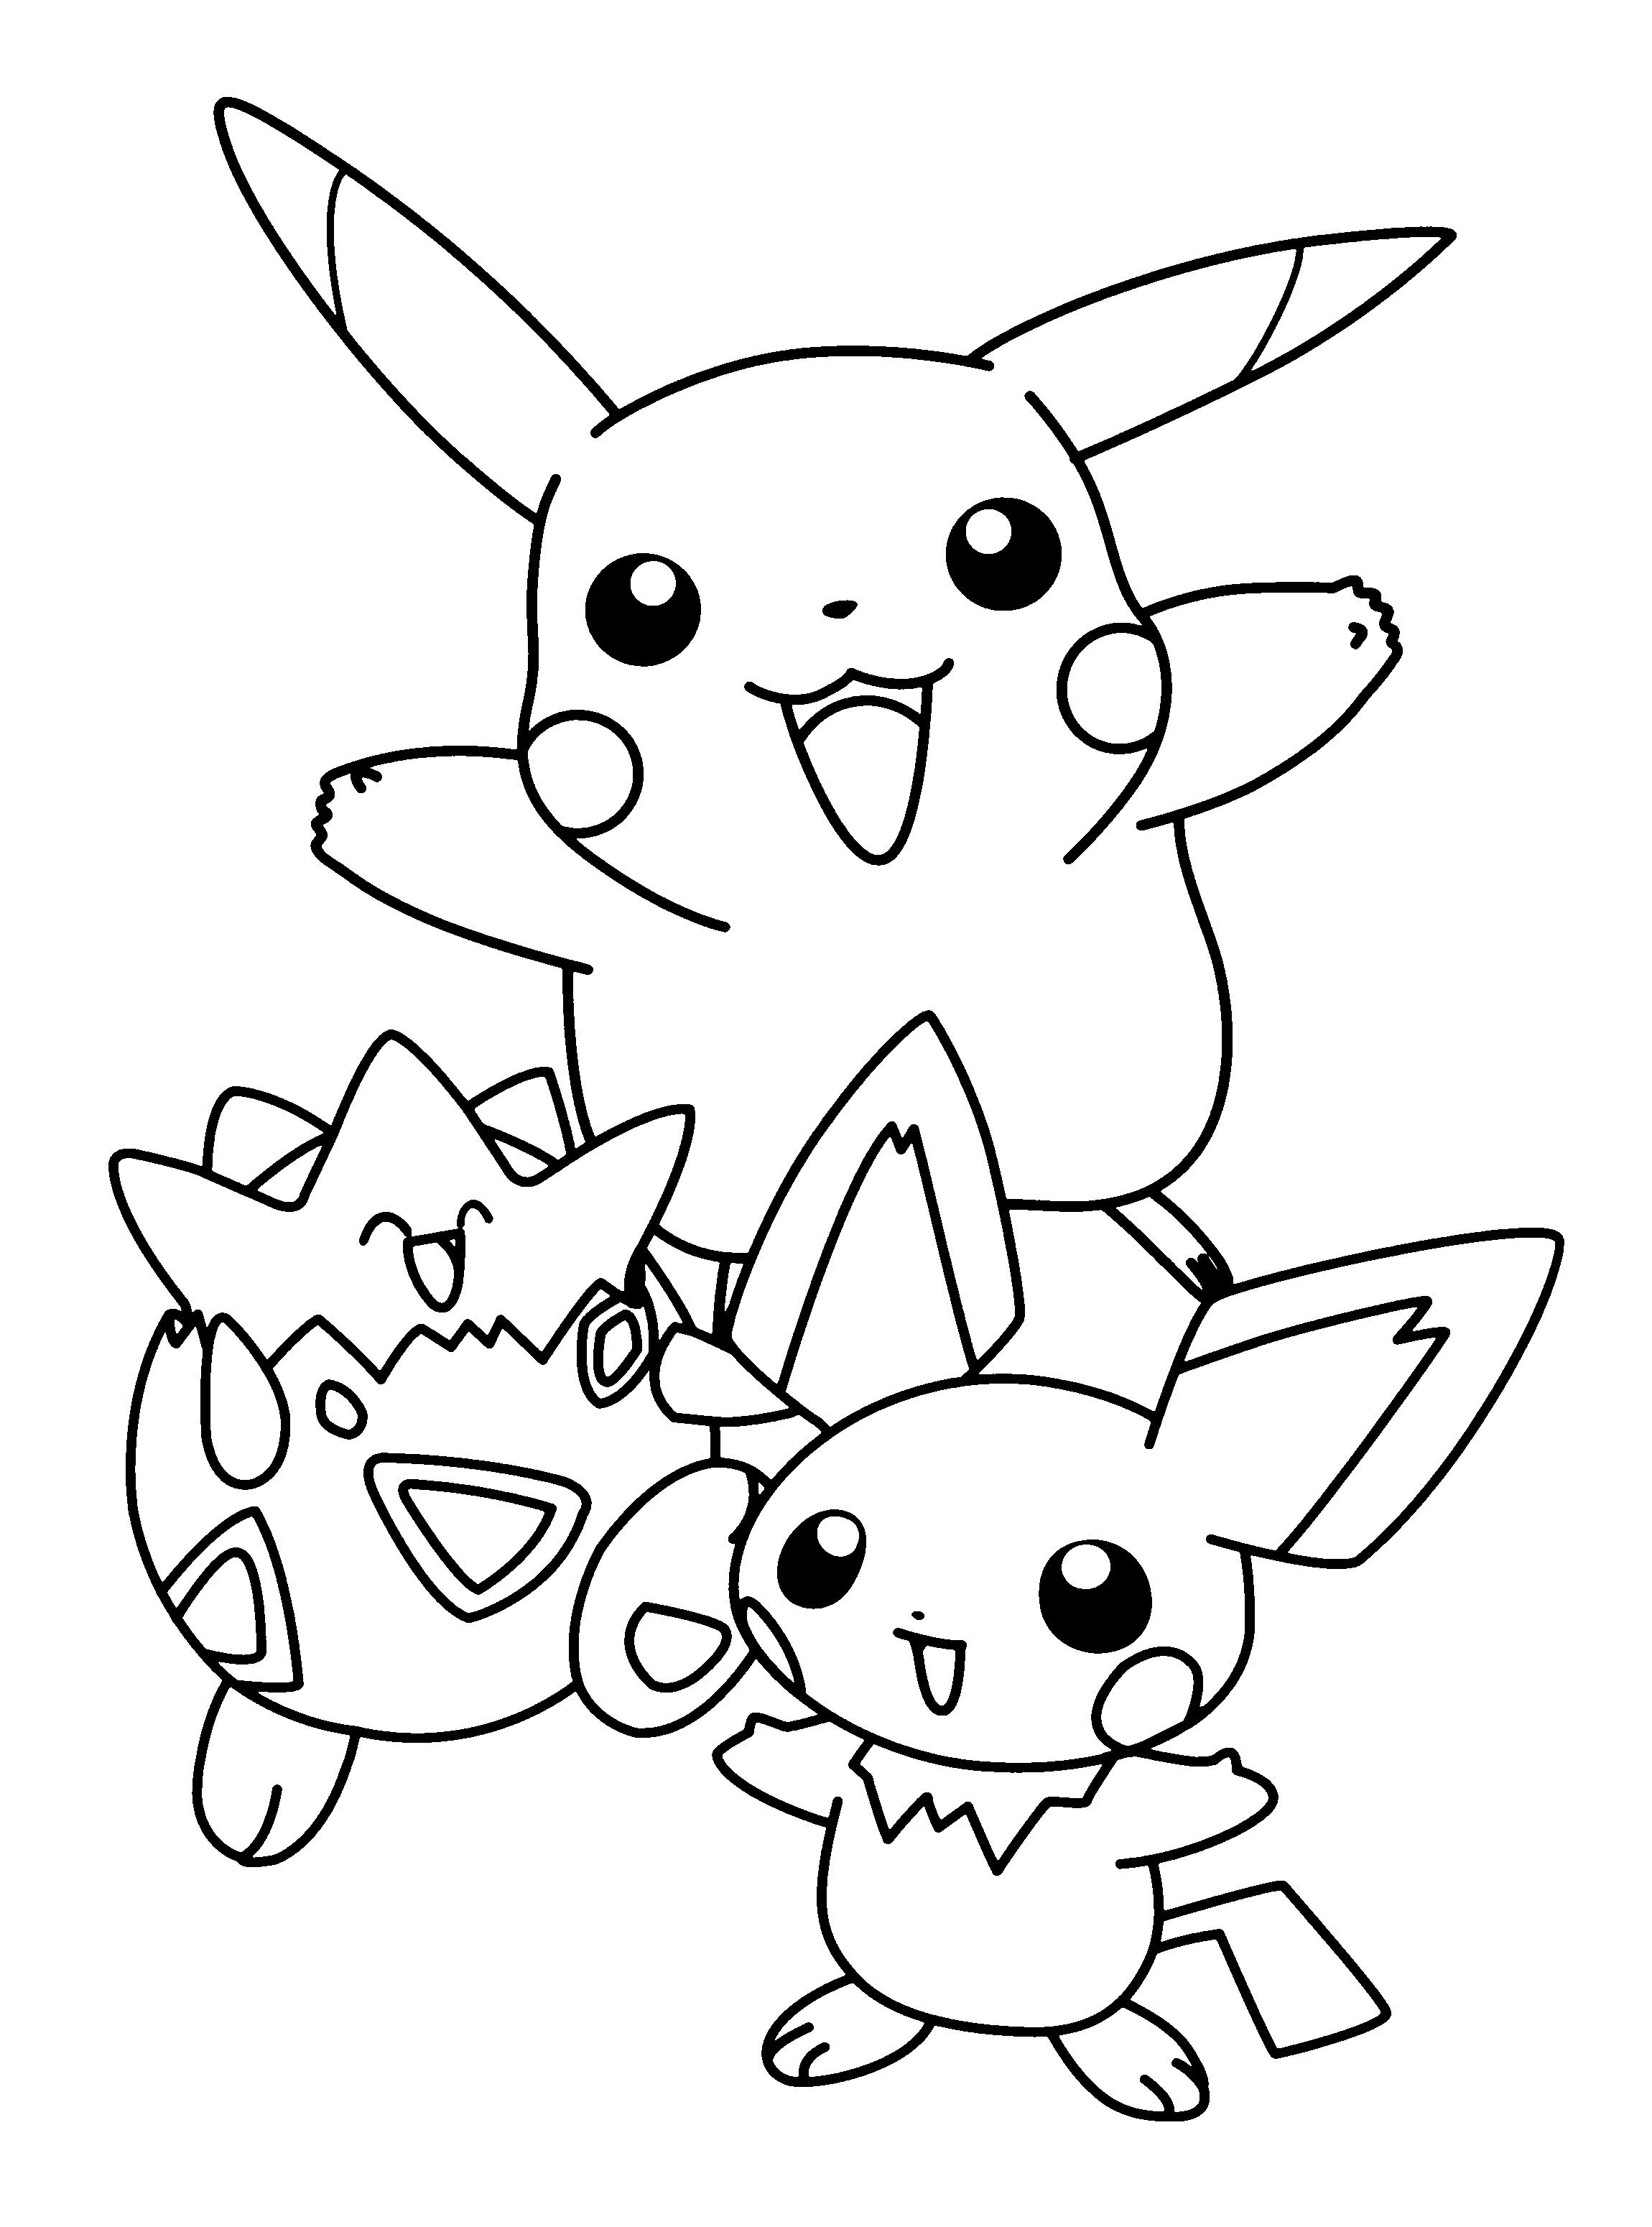 Pokemon Coloring Pages Hd Through The Thousands Of Images On The Internet Regarding Pokemon Pikachu Coloring Page Cartoon Coloring Pages Cool Coloring Pages